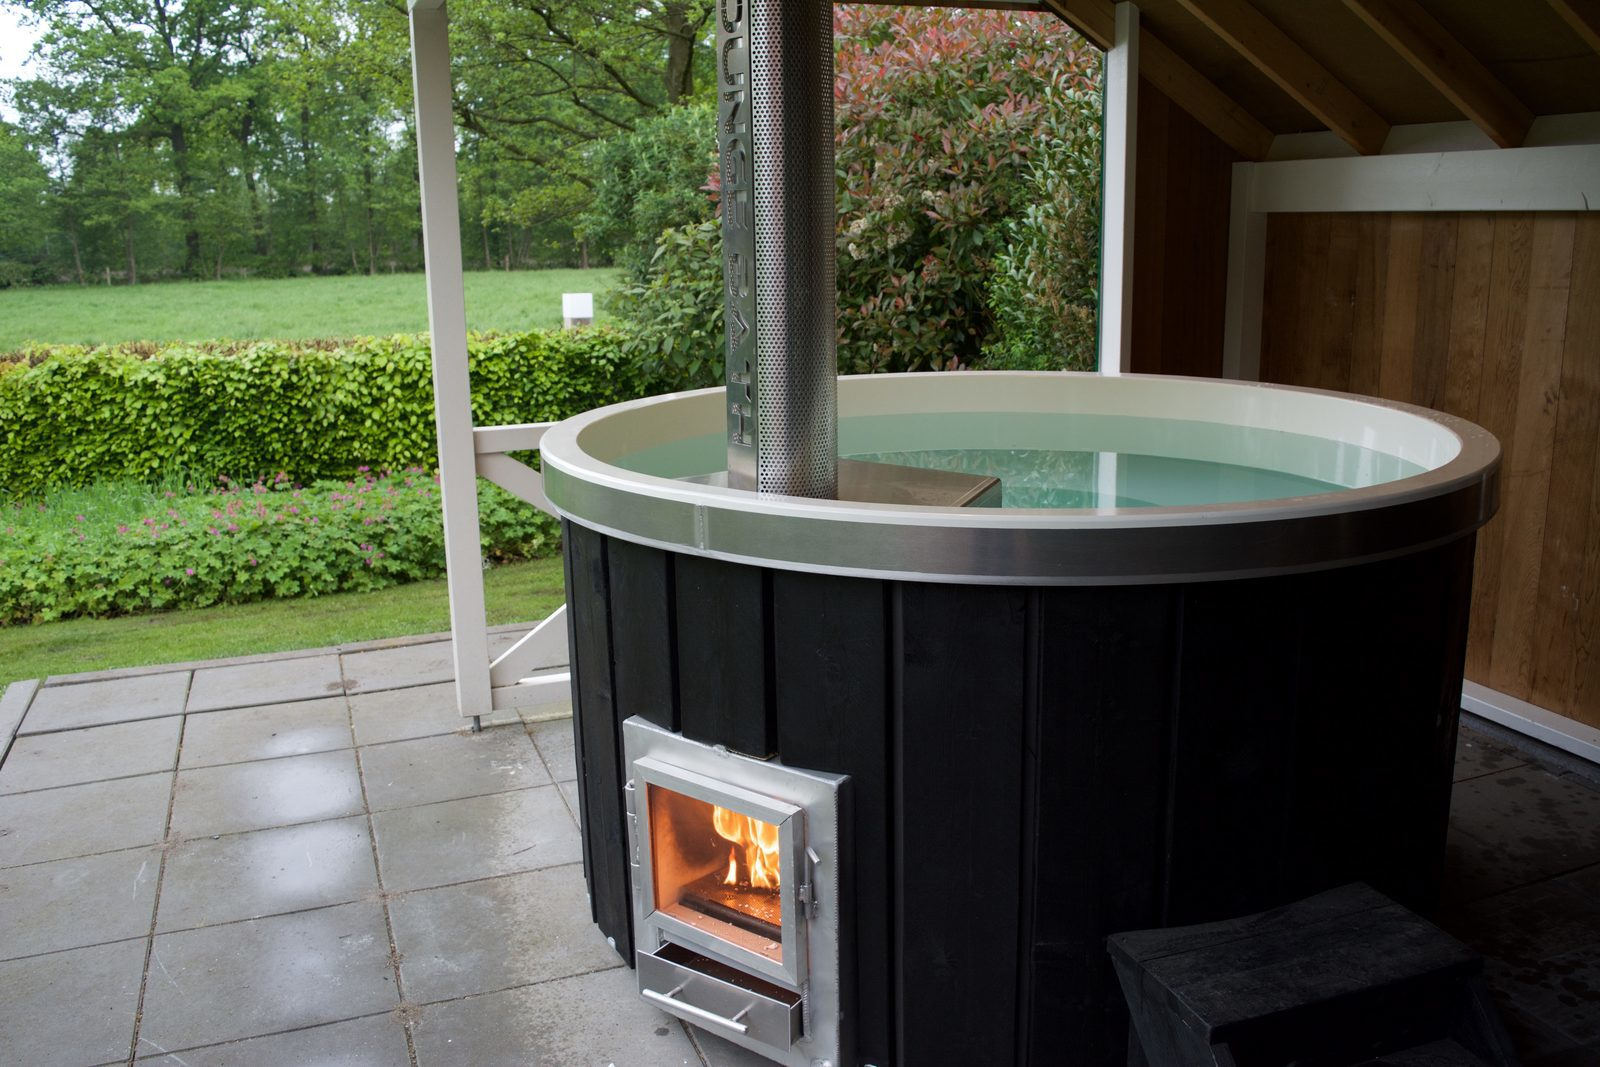 All homes are equipped with a new hot tub type